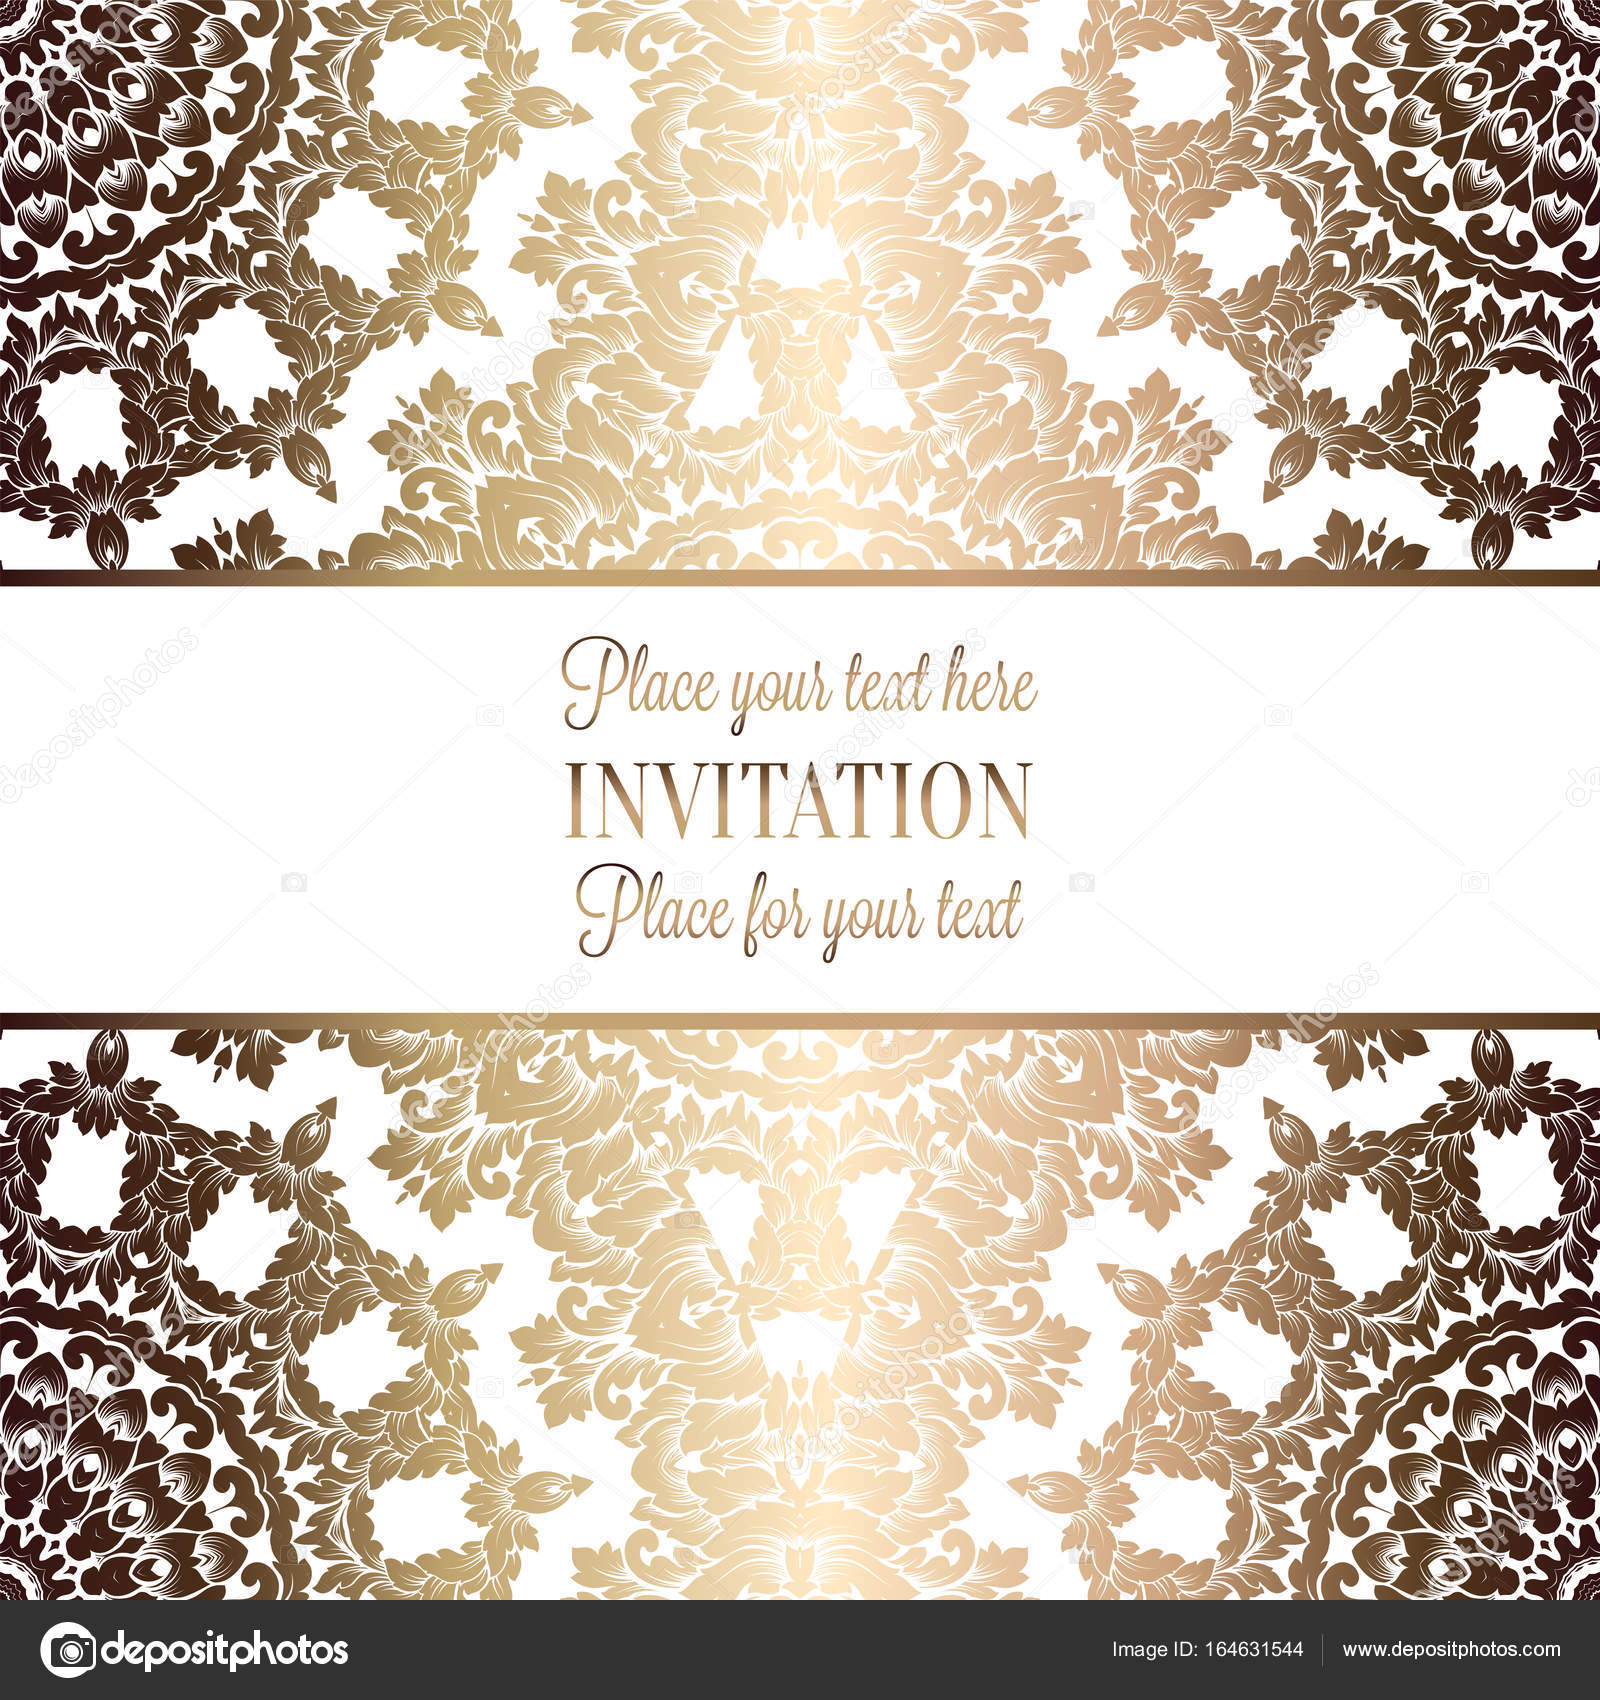 Fotolip Com Rich Image And Wallpaper: Top Review Wallpaper For Invitation Card And Pics